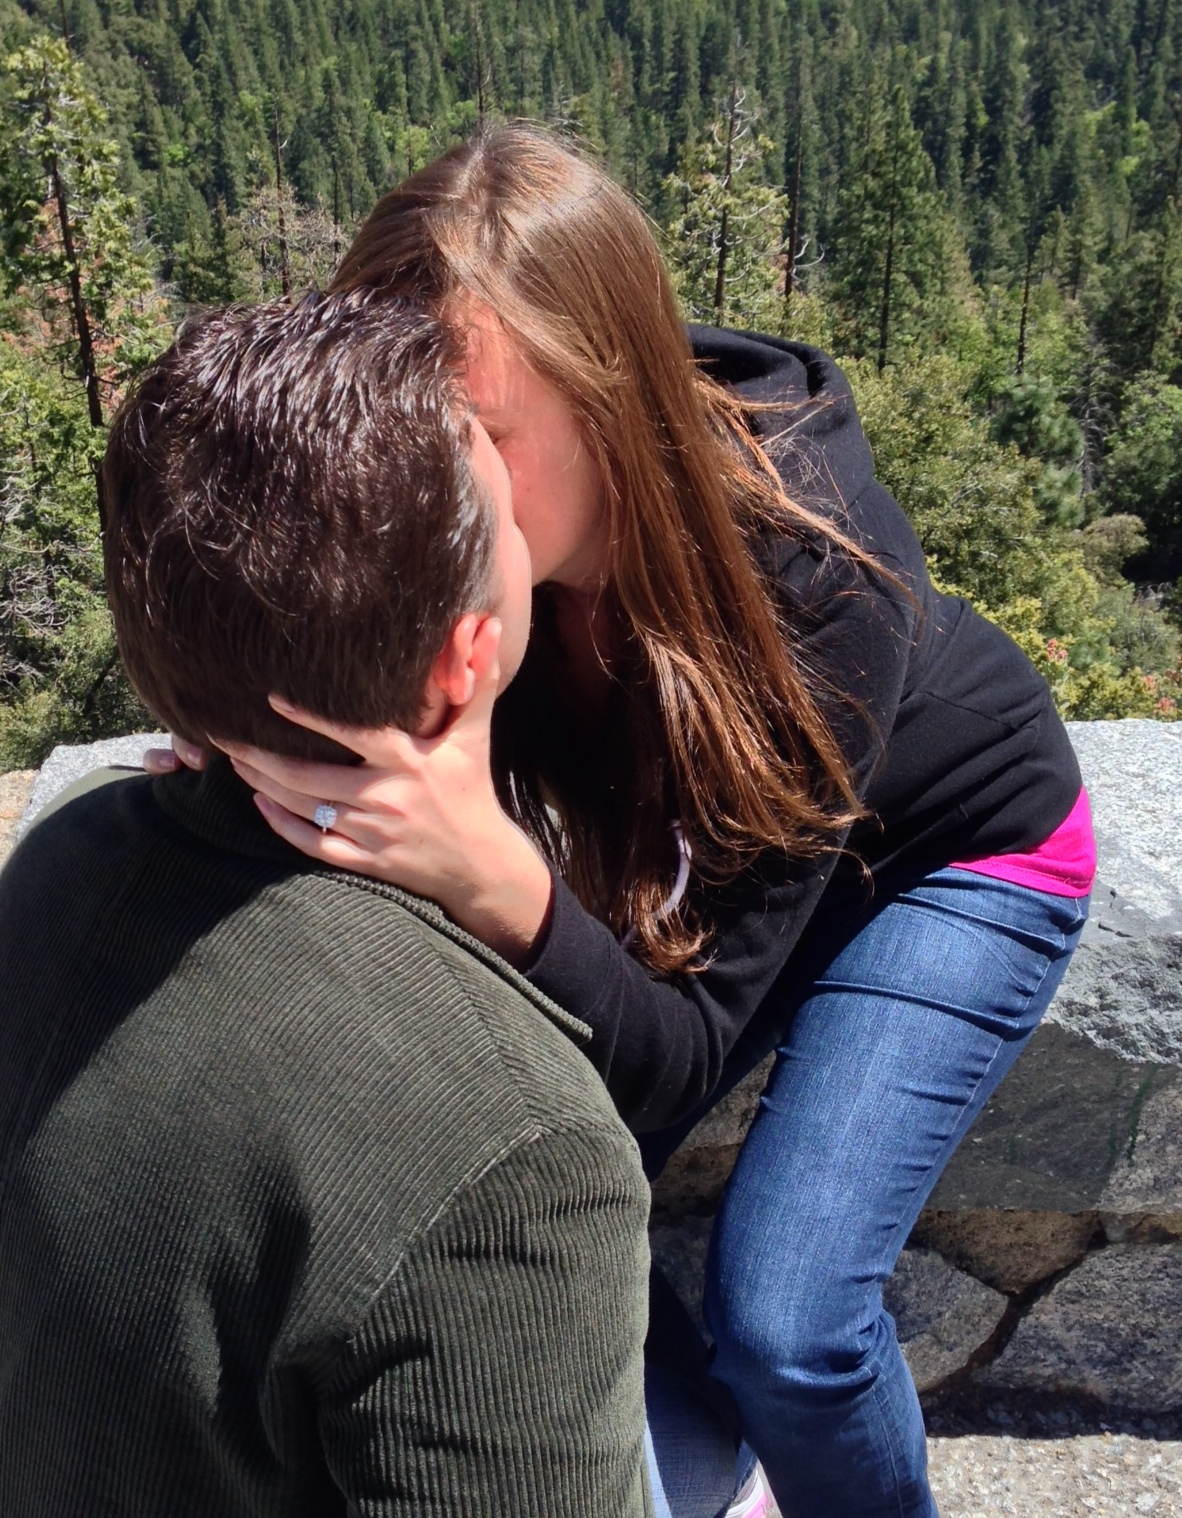 Image 5 of Danielle and Kyle | Yosemite National Park Proposal